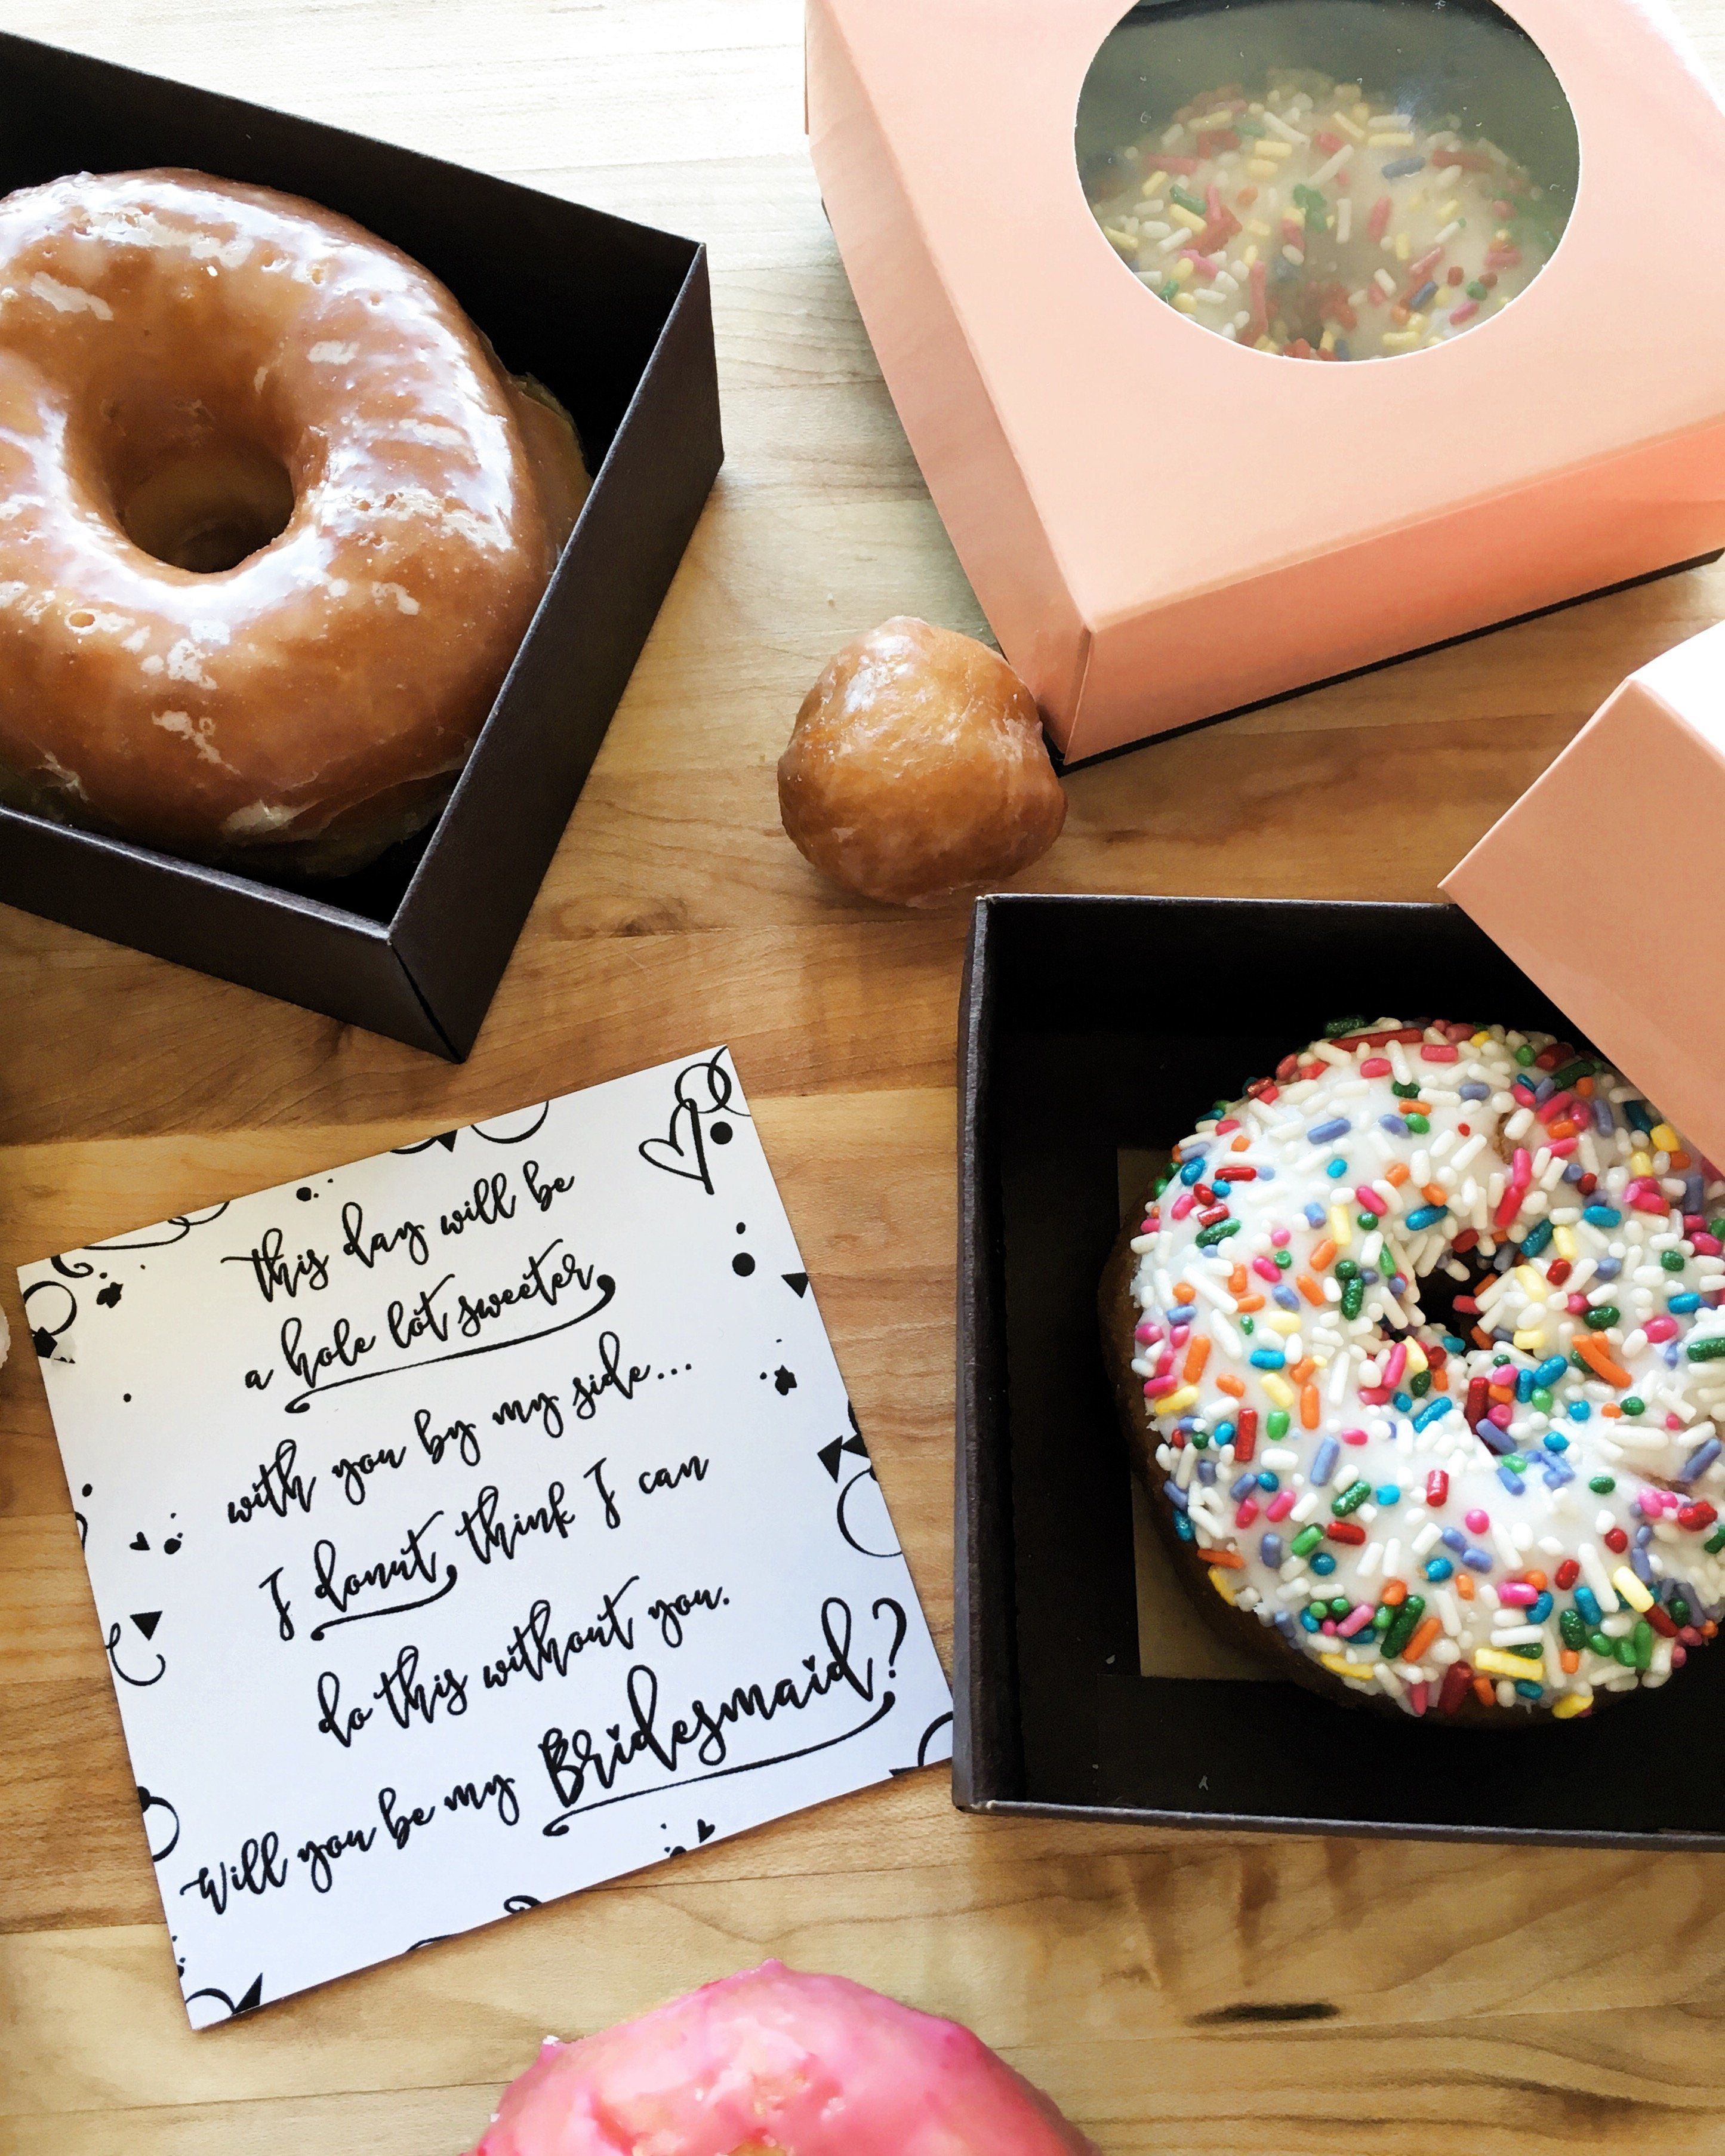 Let your girls know that you*donut* think youcan do this withoutthem.